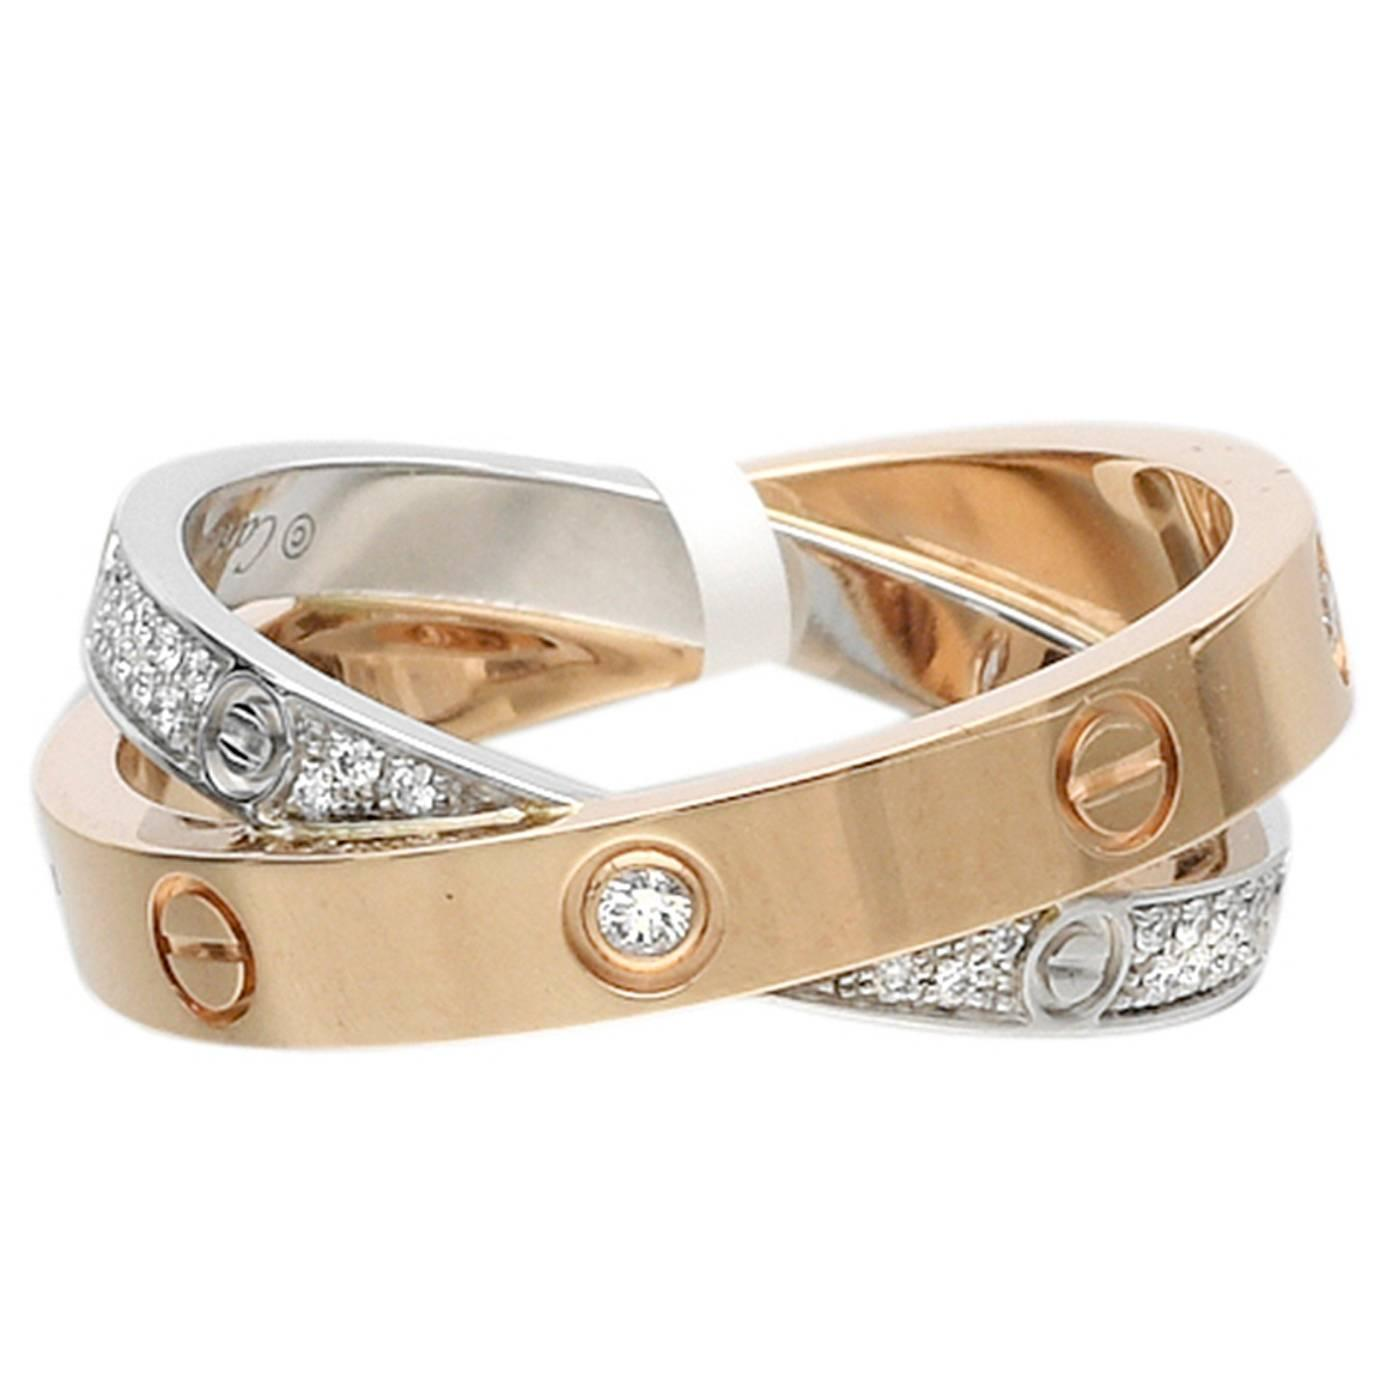 Cartier LOVE Diamond Gold Double Band Ring at 1stdibs